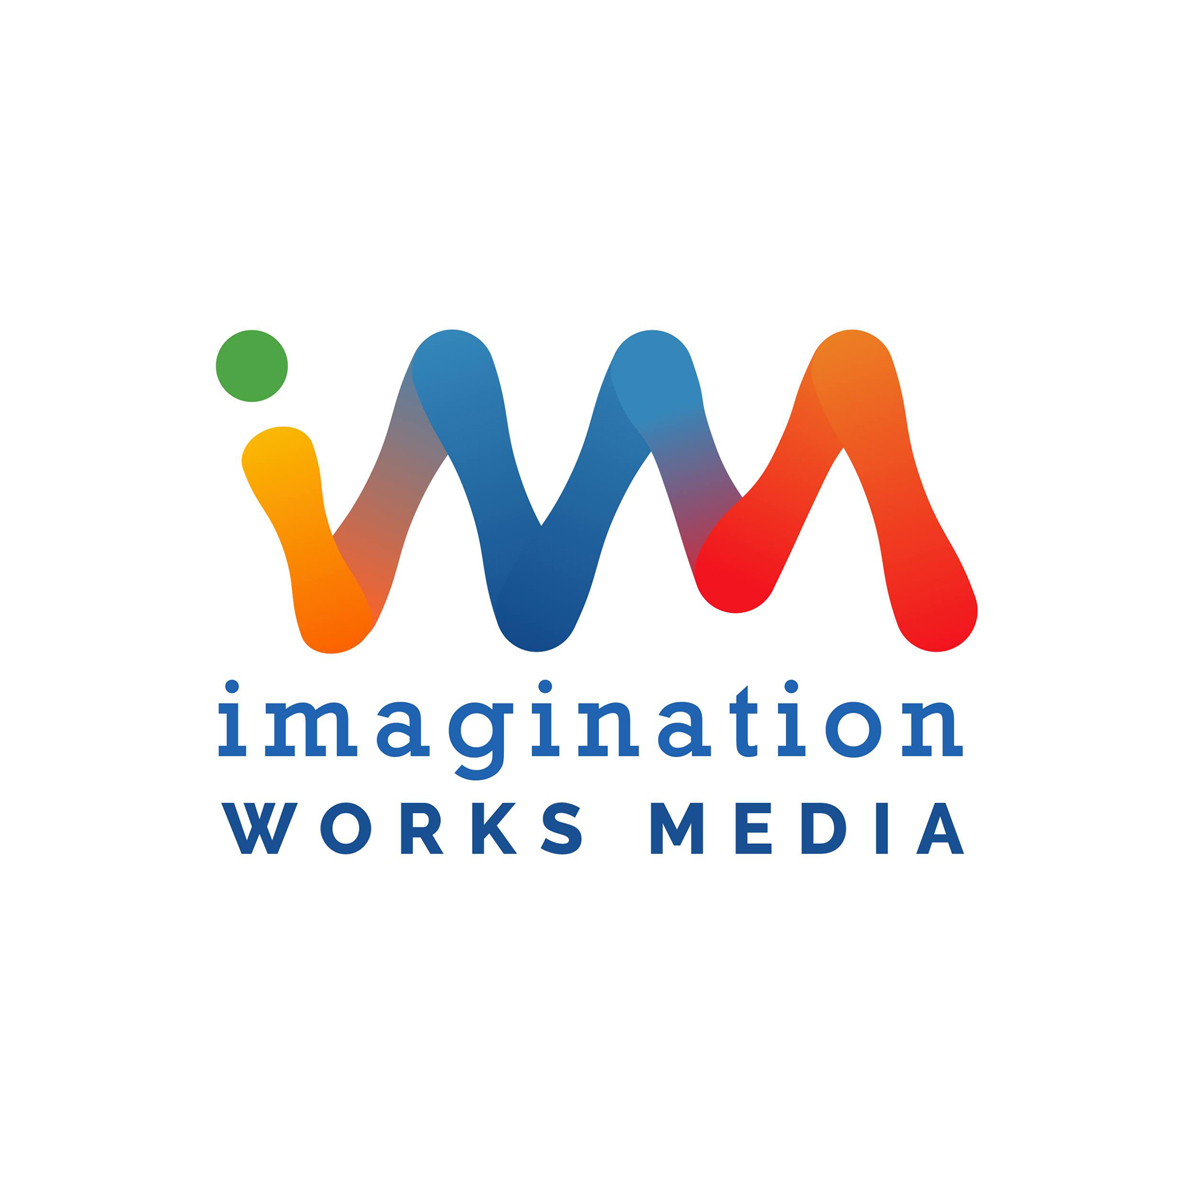 imagination-works-media